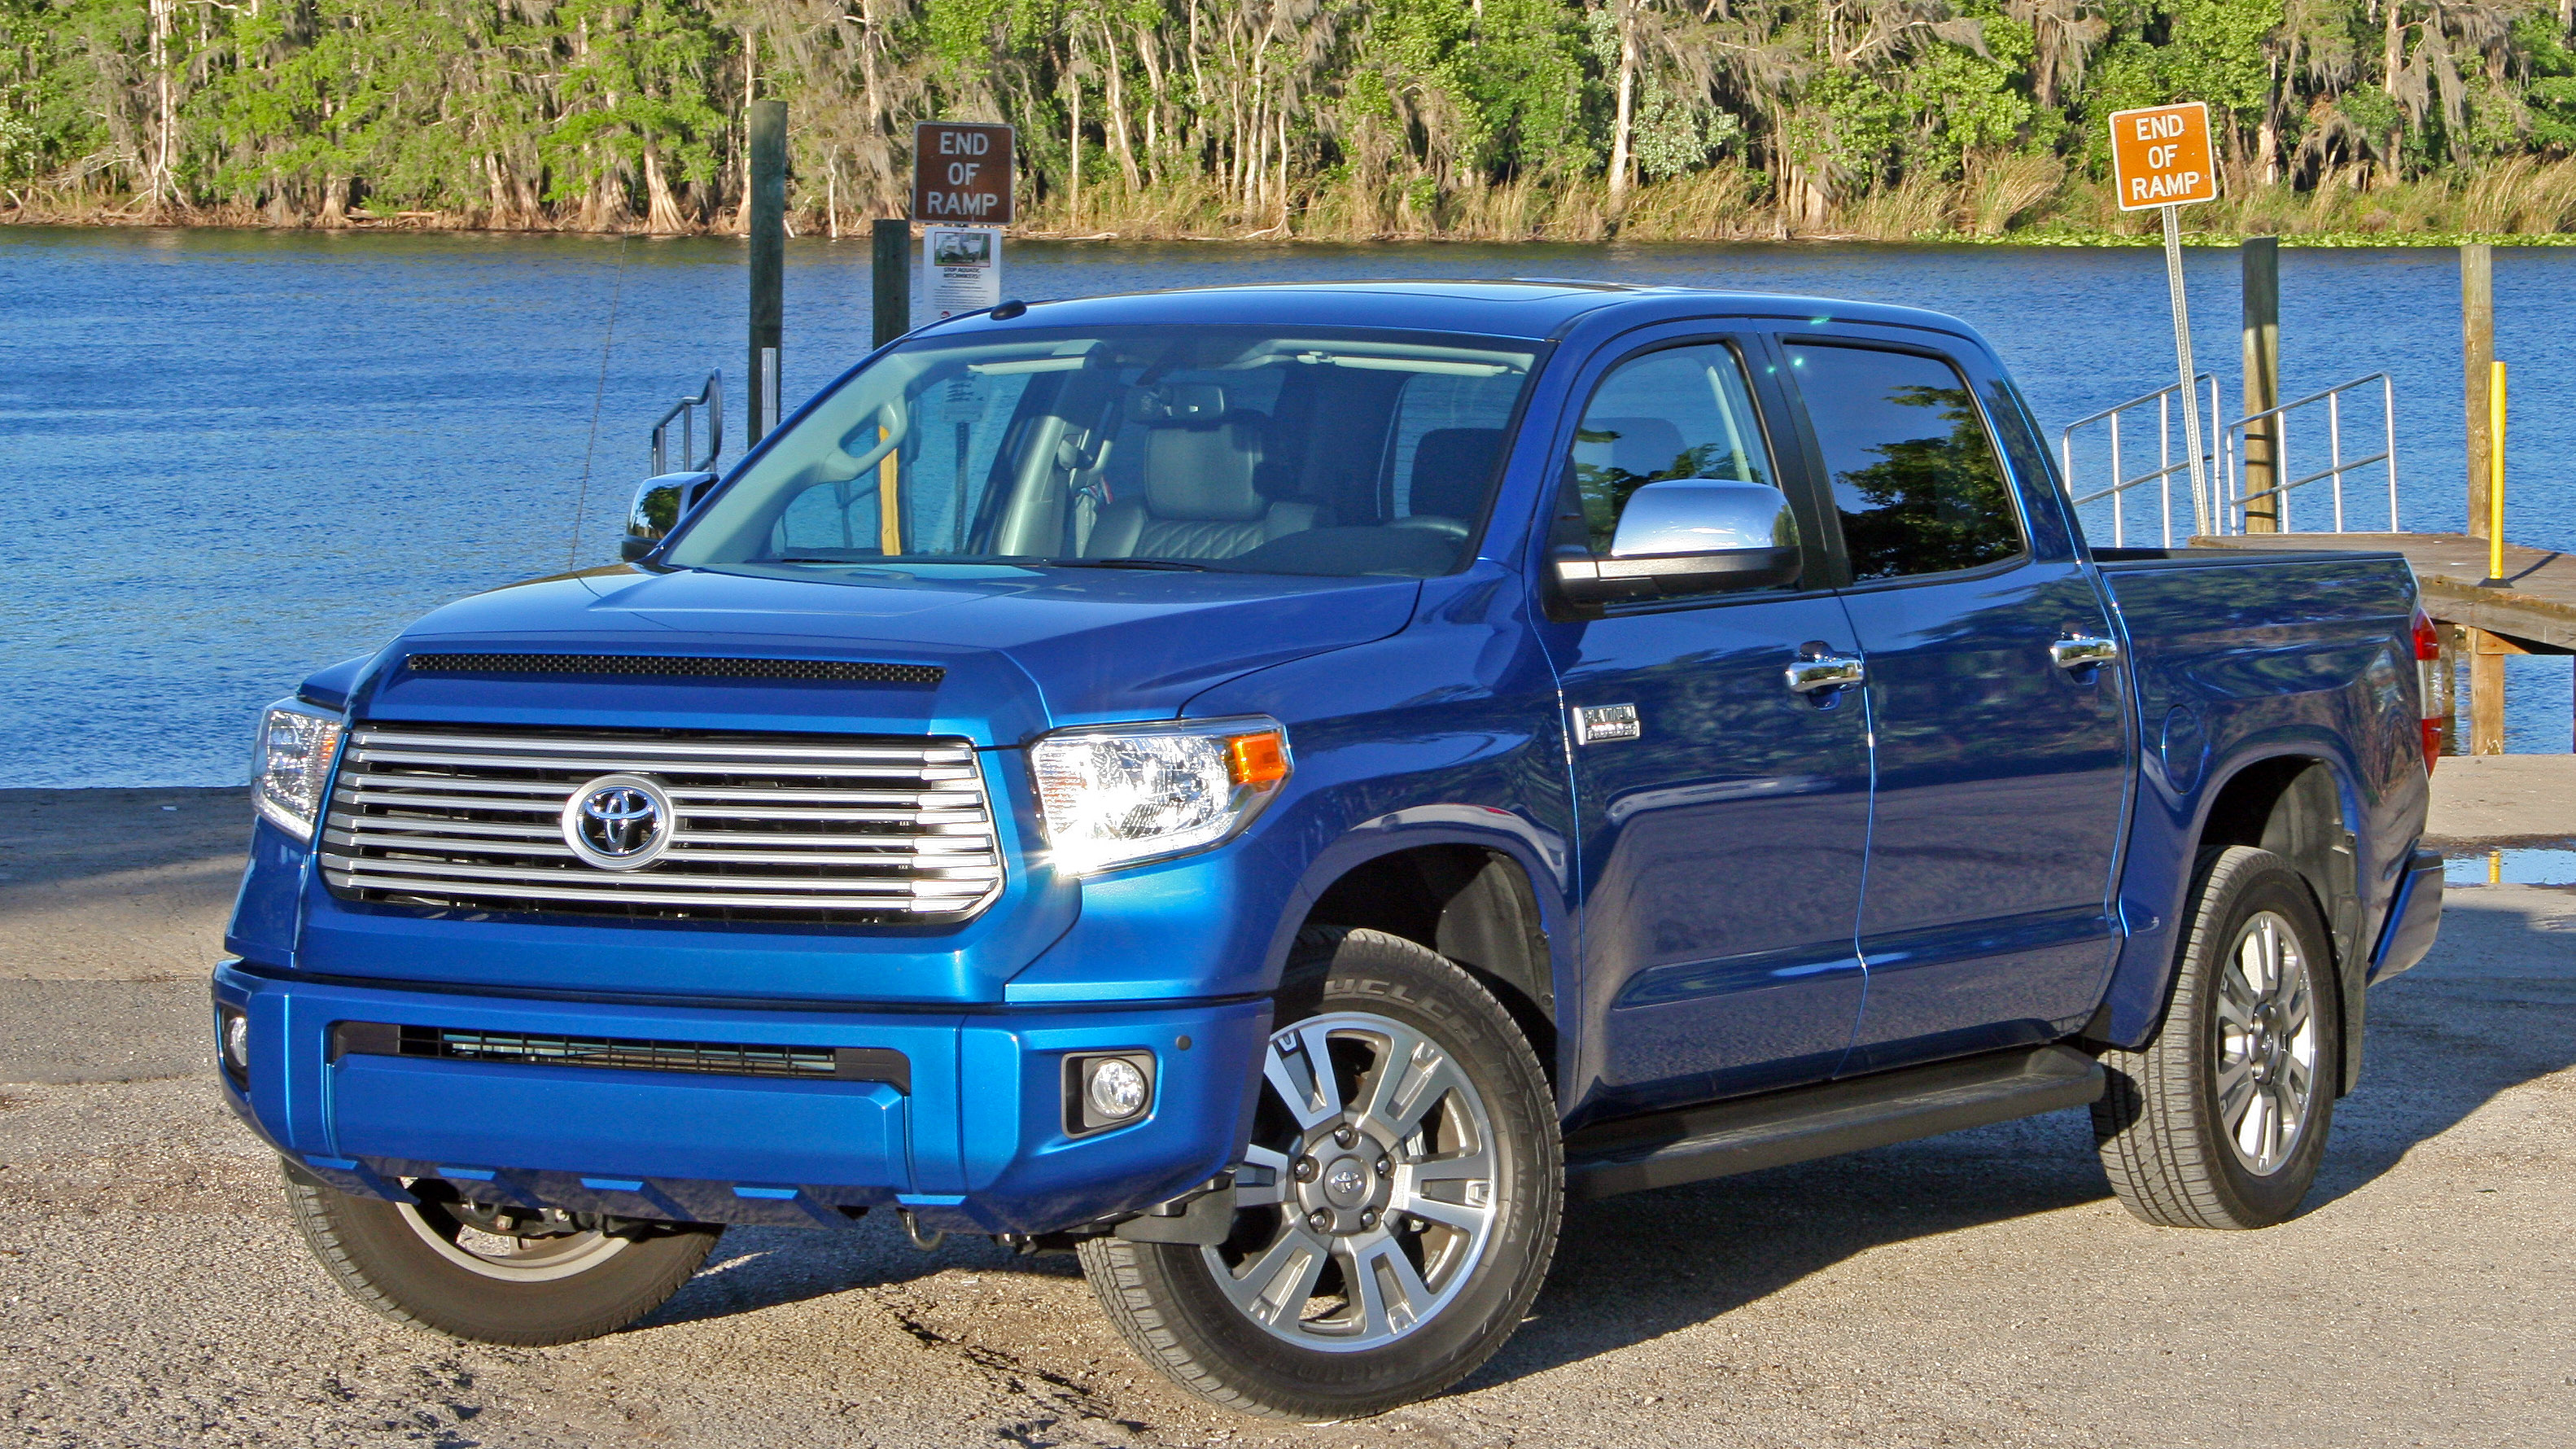 Toyota Tundra Rear Window Replacement >> Hands Down The Coolest Feature Of The Toyota Tundra Top Speed